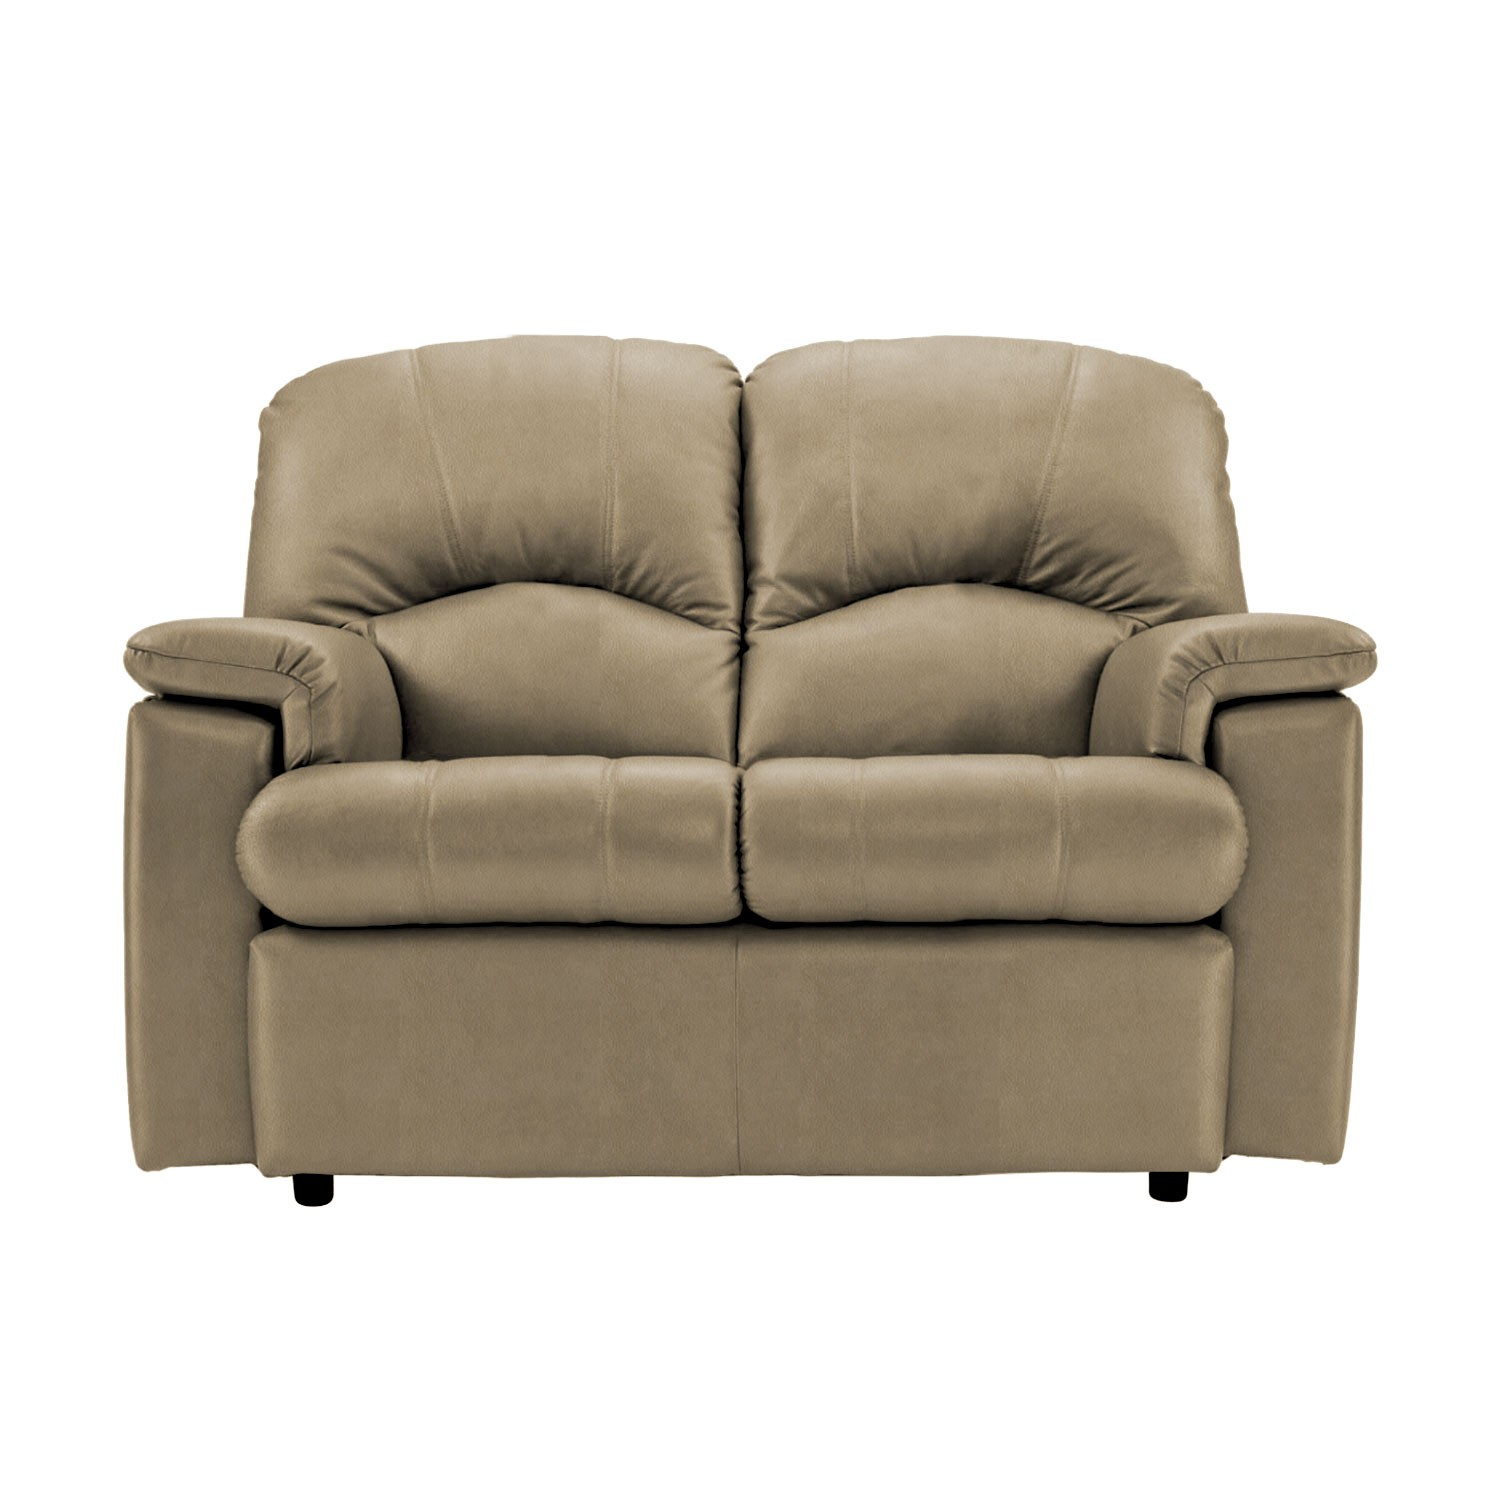 G Plan Chloe Two Seater Leather Sofa Small